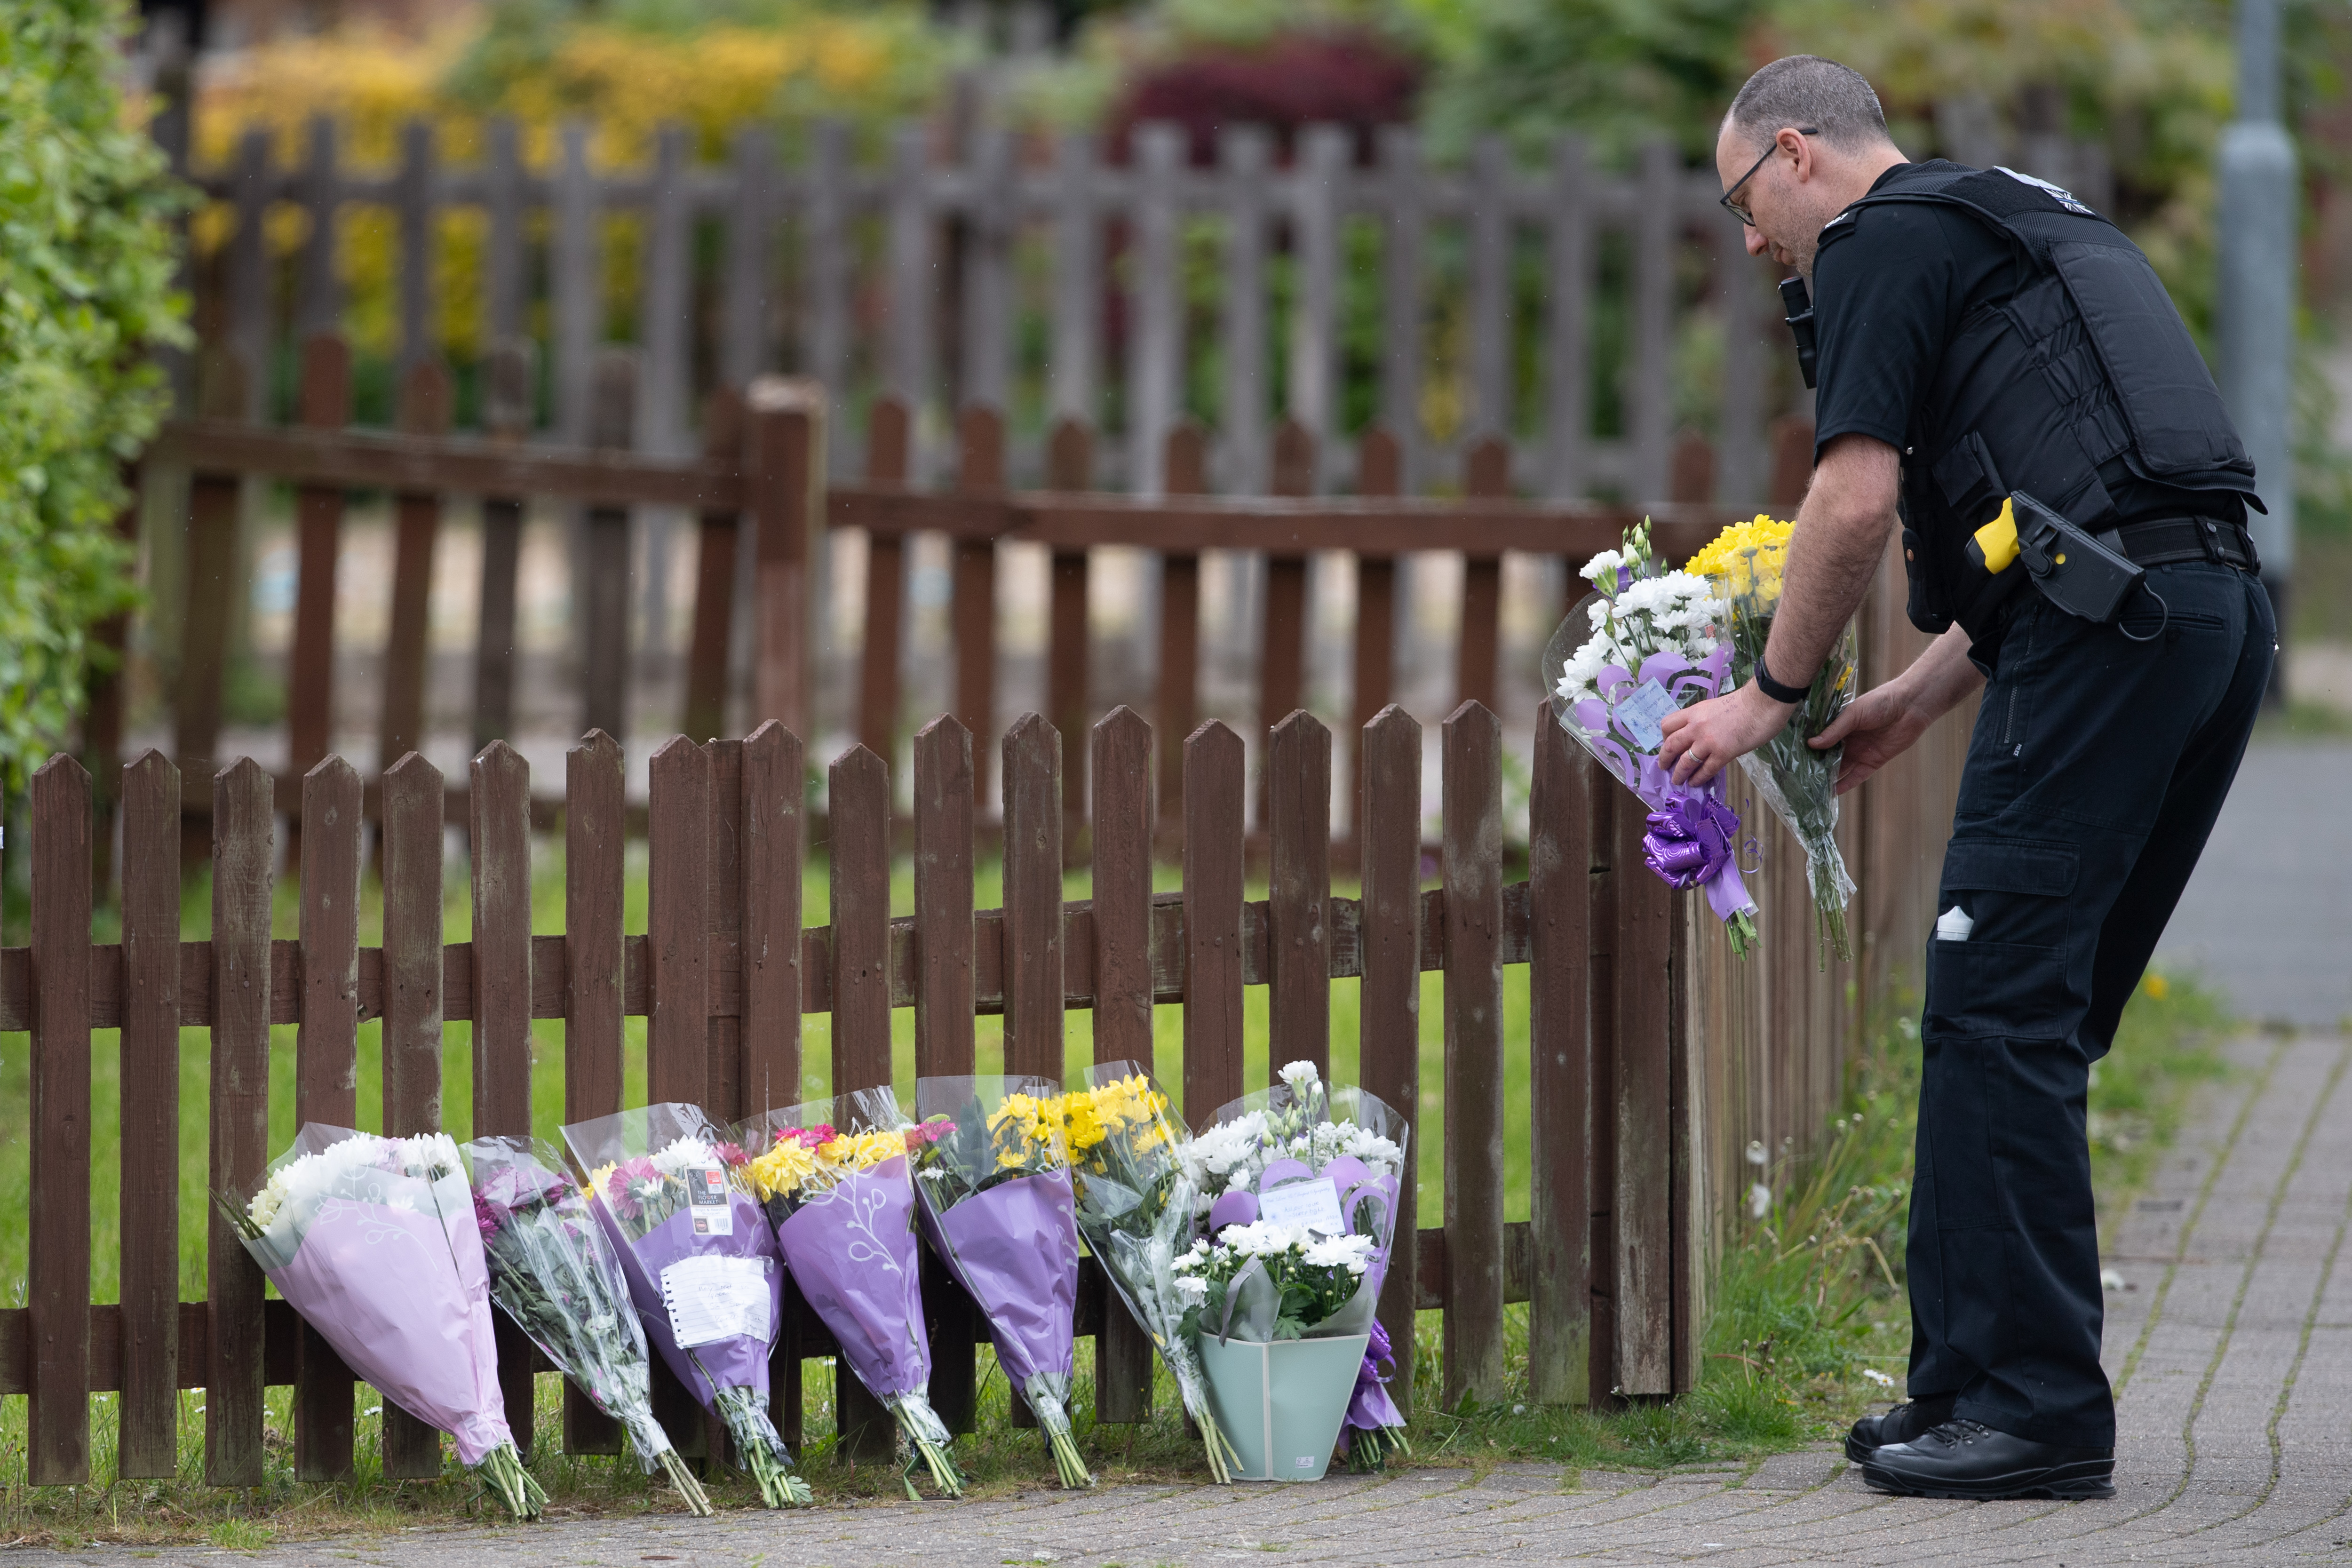 <p>A police officer carries flowers near the scene in Constable Road, Corby, Northamptonshire, following the fatal stabbing of a 16-year-old boy on Tuesday. Picture date: Wednesday May 26, 2021.</p>